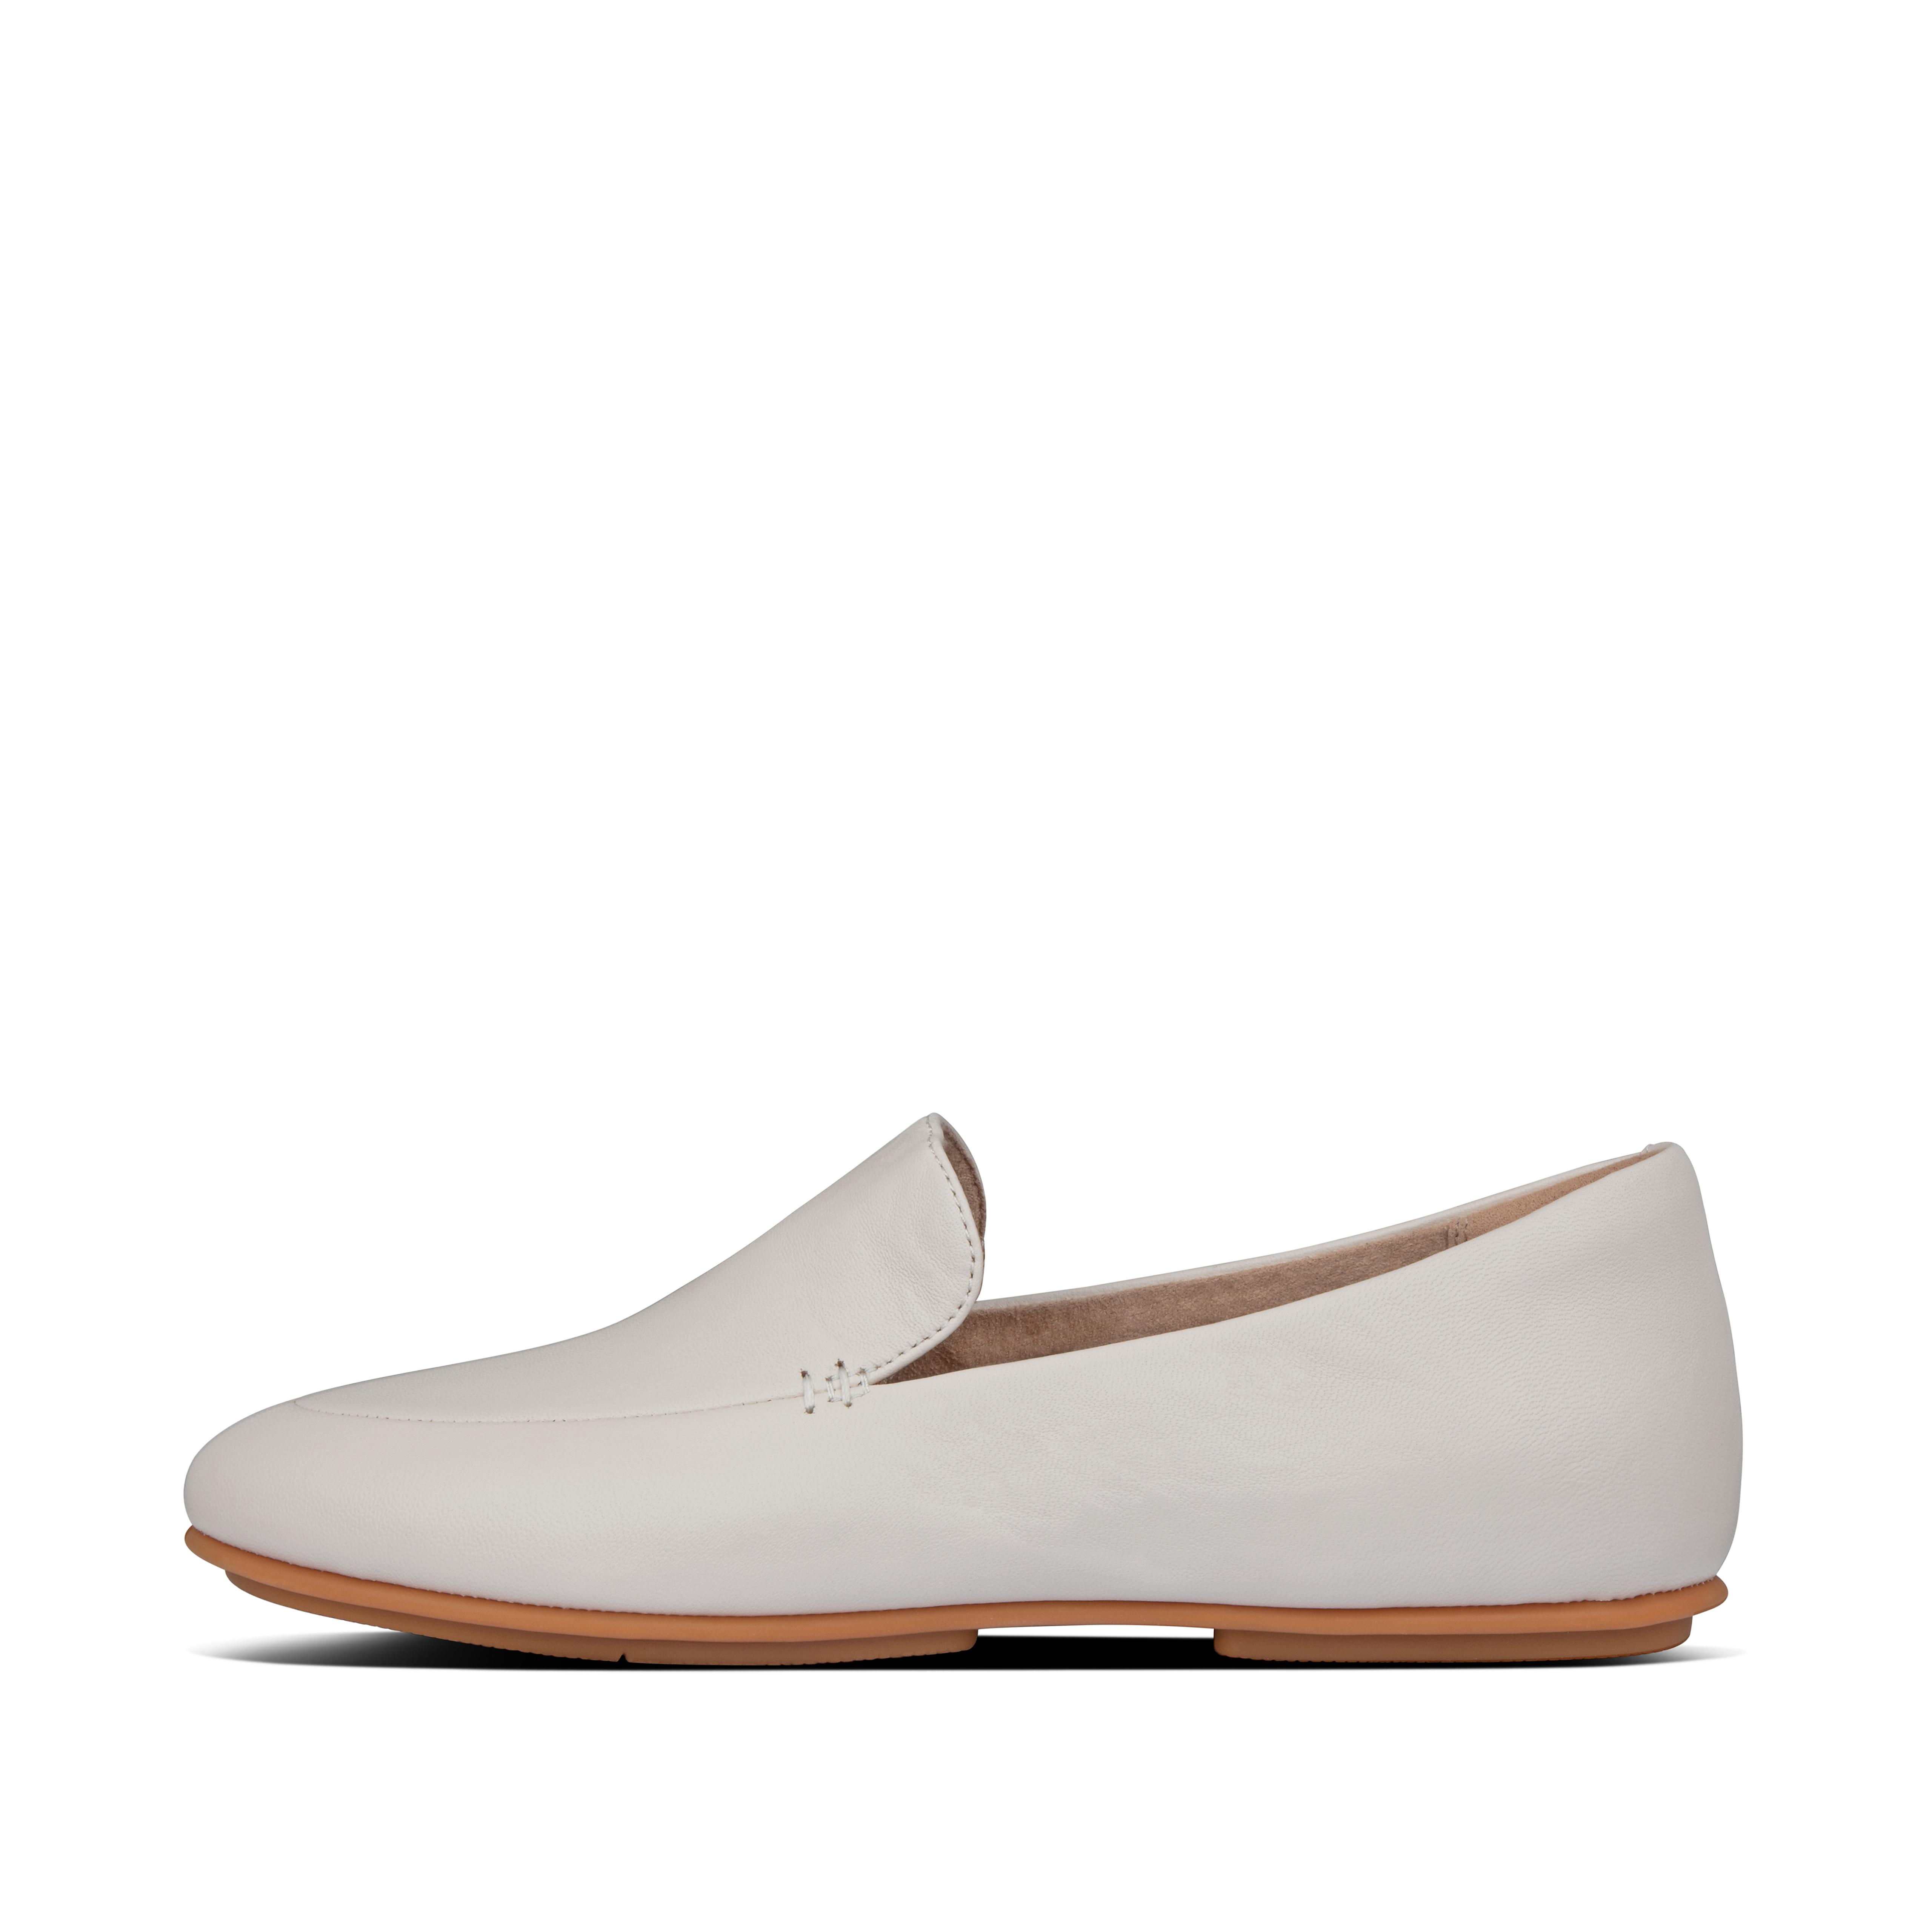 Our Lena loafers are ultimate proof that less is more. Ultra-minimal, light, with an androgynous aesthetic, these\\\'ll add class to every outfit you wear them with. Yet they deliver major comfort and cushioning thanks to their anatomically shaped footbed and our \\\'bouncy\\\' Dynamicush™ tech hidden in a classic \\\'flat sole\\\'. This version crafted in butter-soft leather.